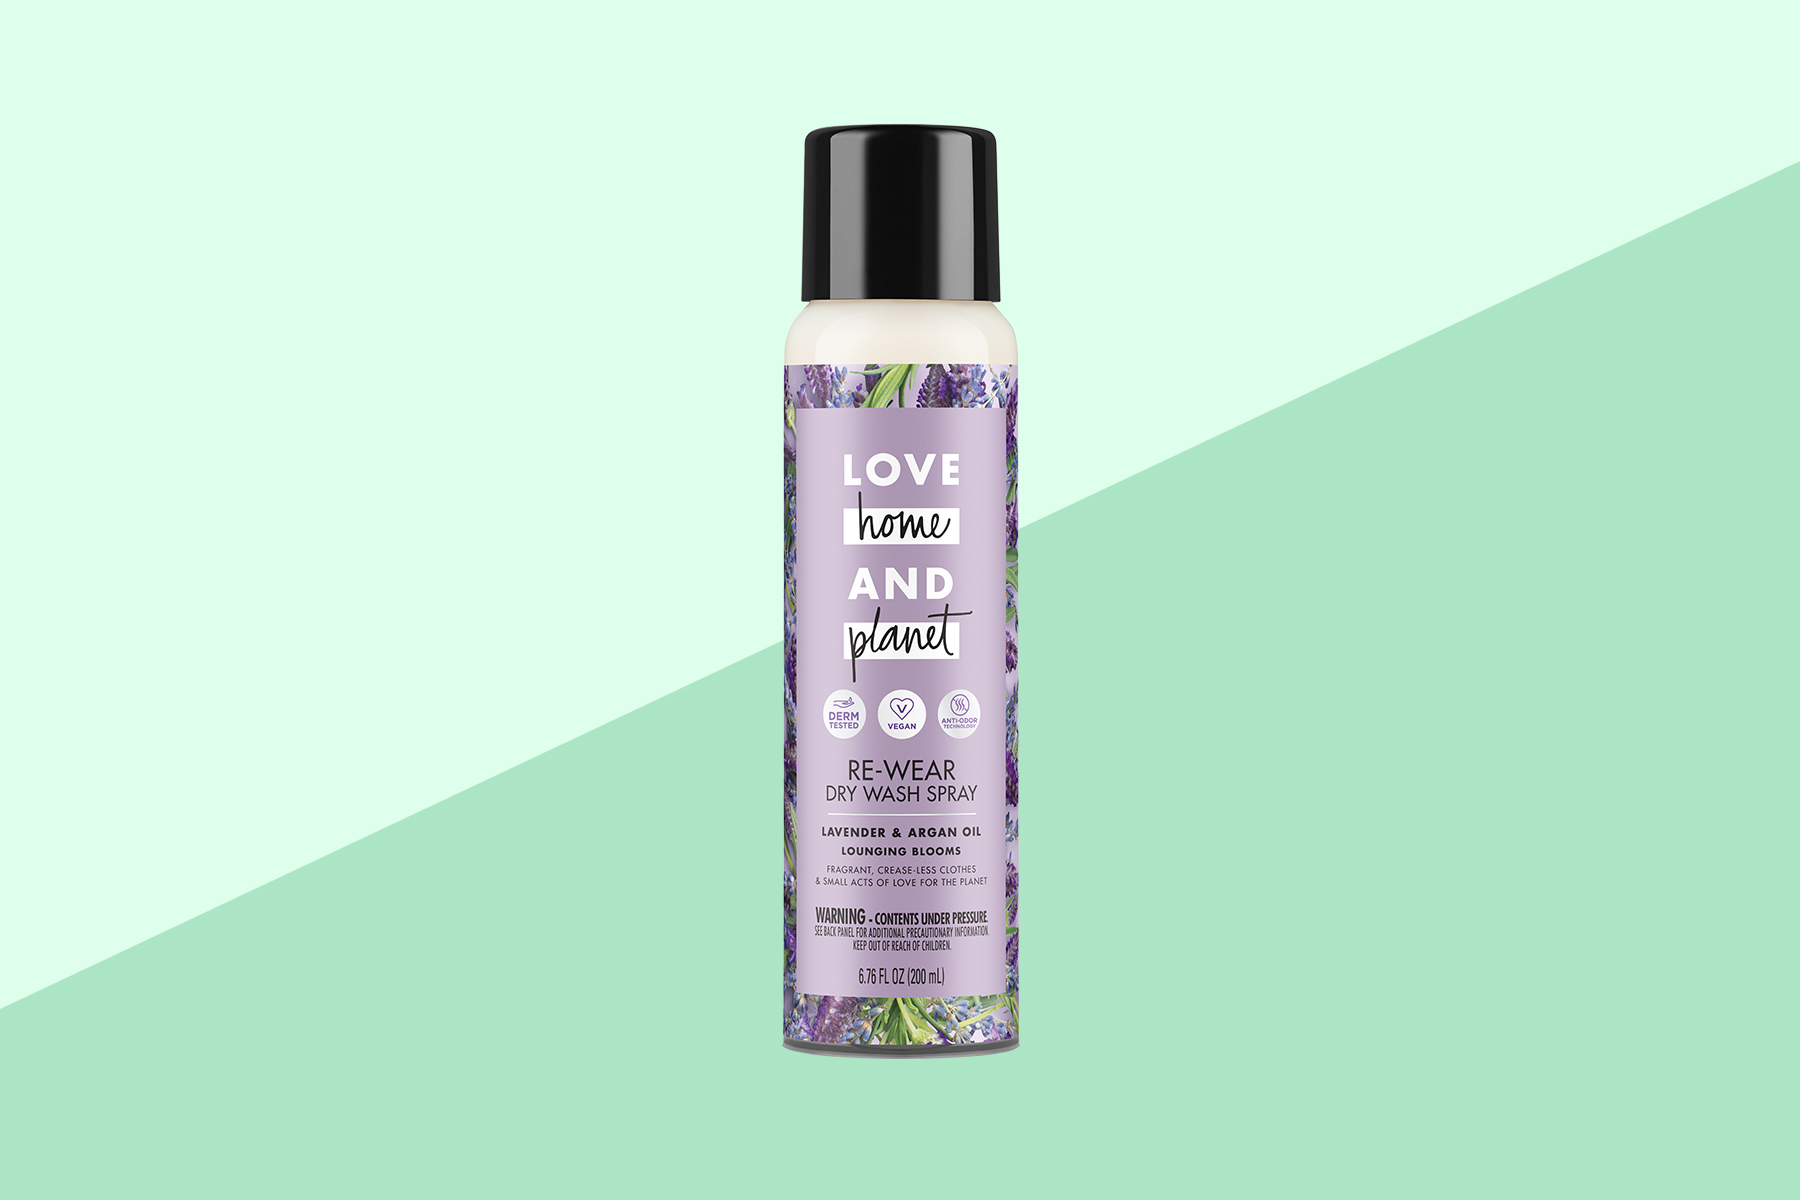 Love Home and Planet Re-Wear Clothing Dry Wash Spray